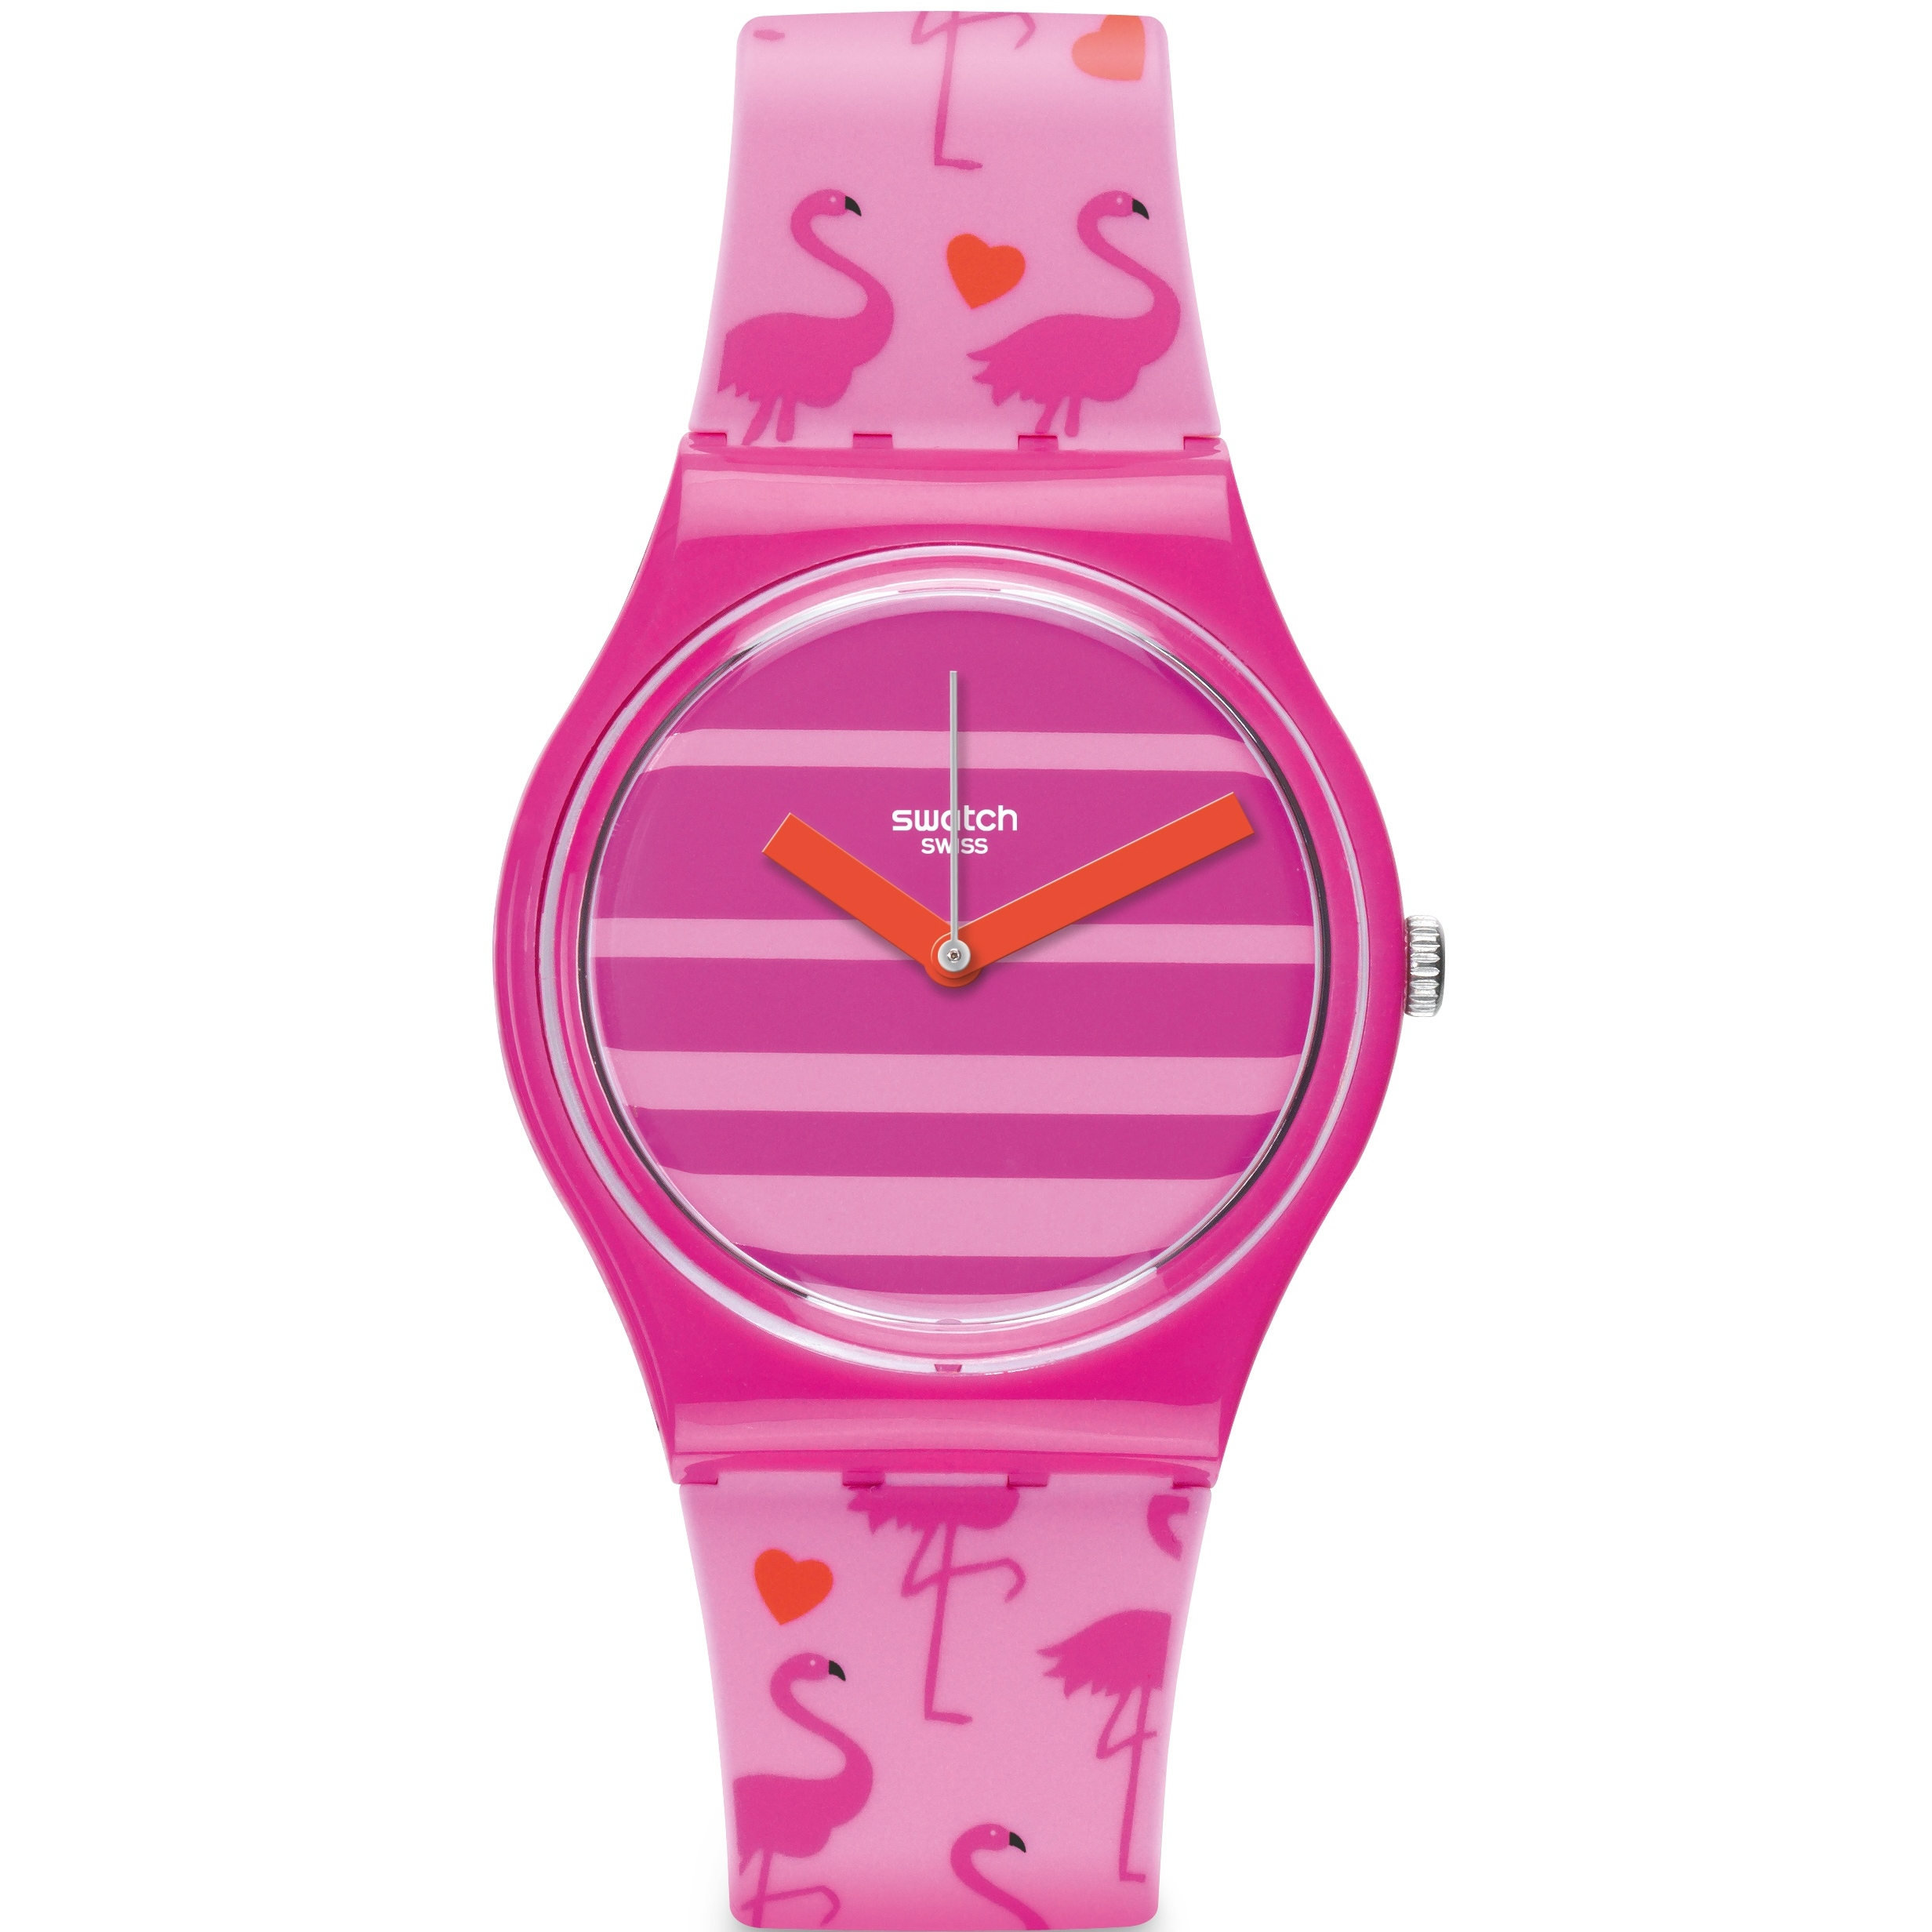 with the pin cute rose time thefifth demasrusli gold watches peach adventure thefifthwatches